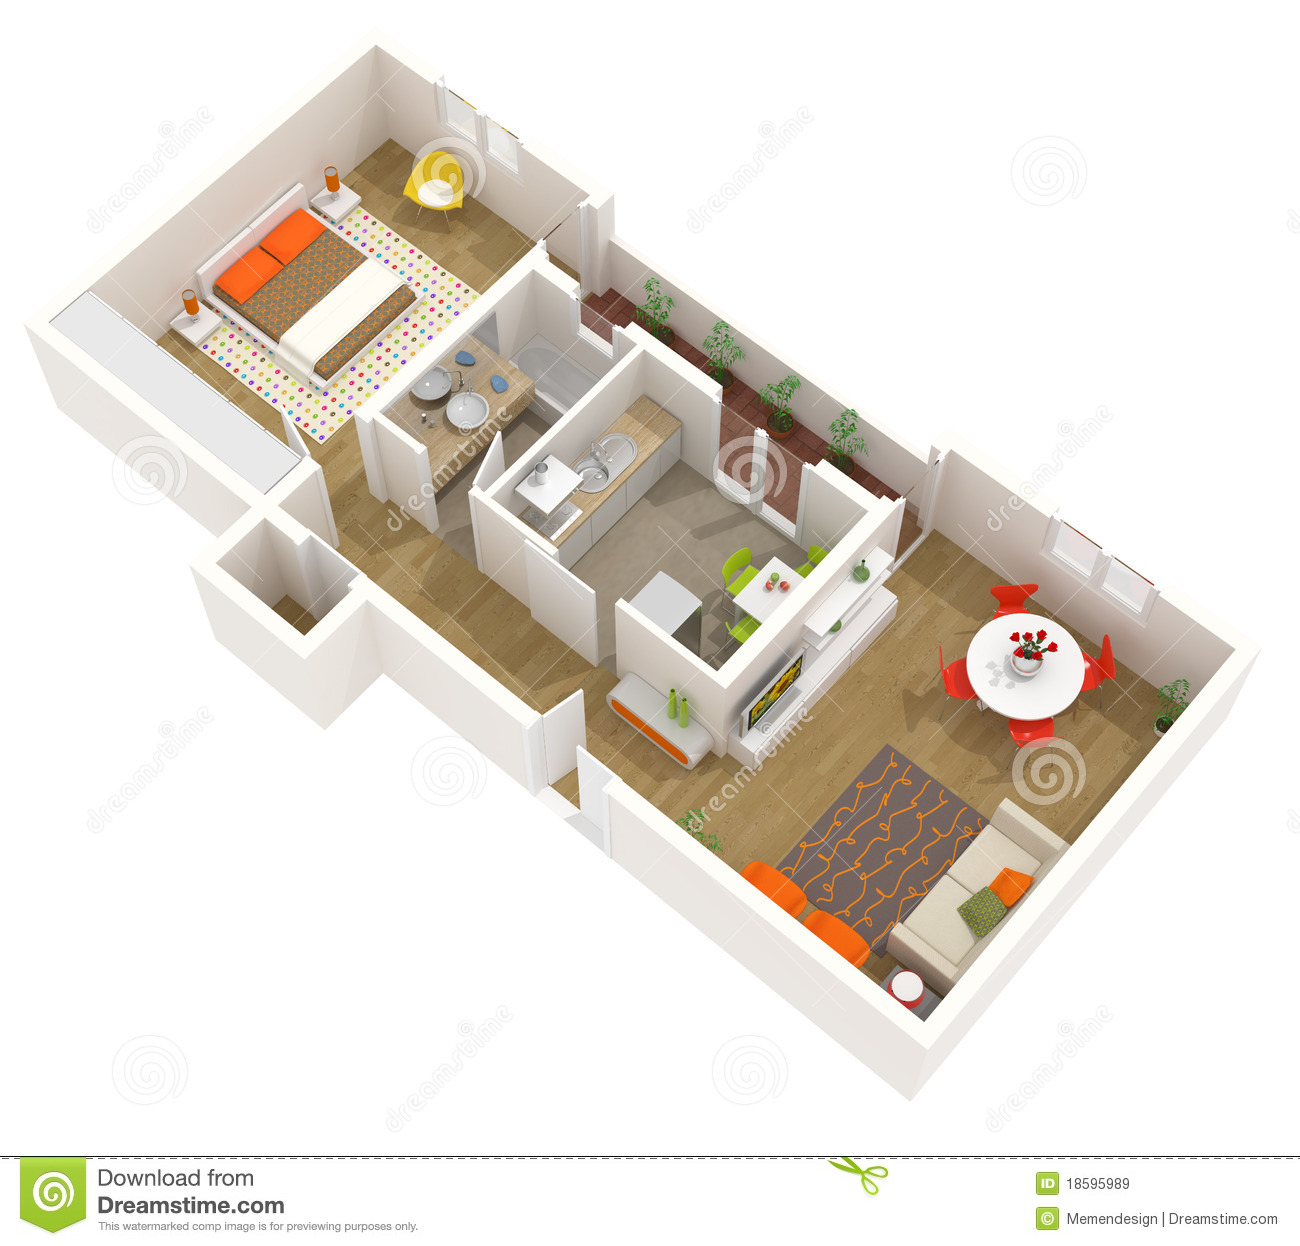 Modern Apartment Interior Design Plans Apartment Interior Design  3D Floor Plan Royalty Free Stock .